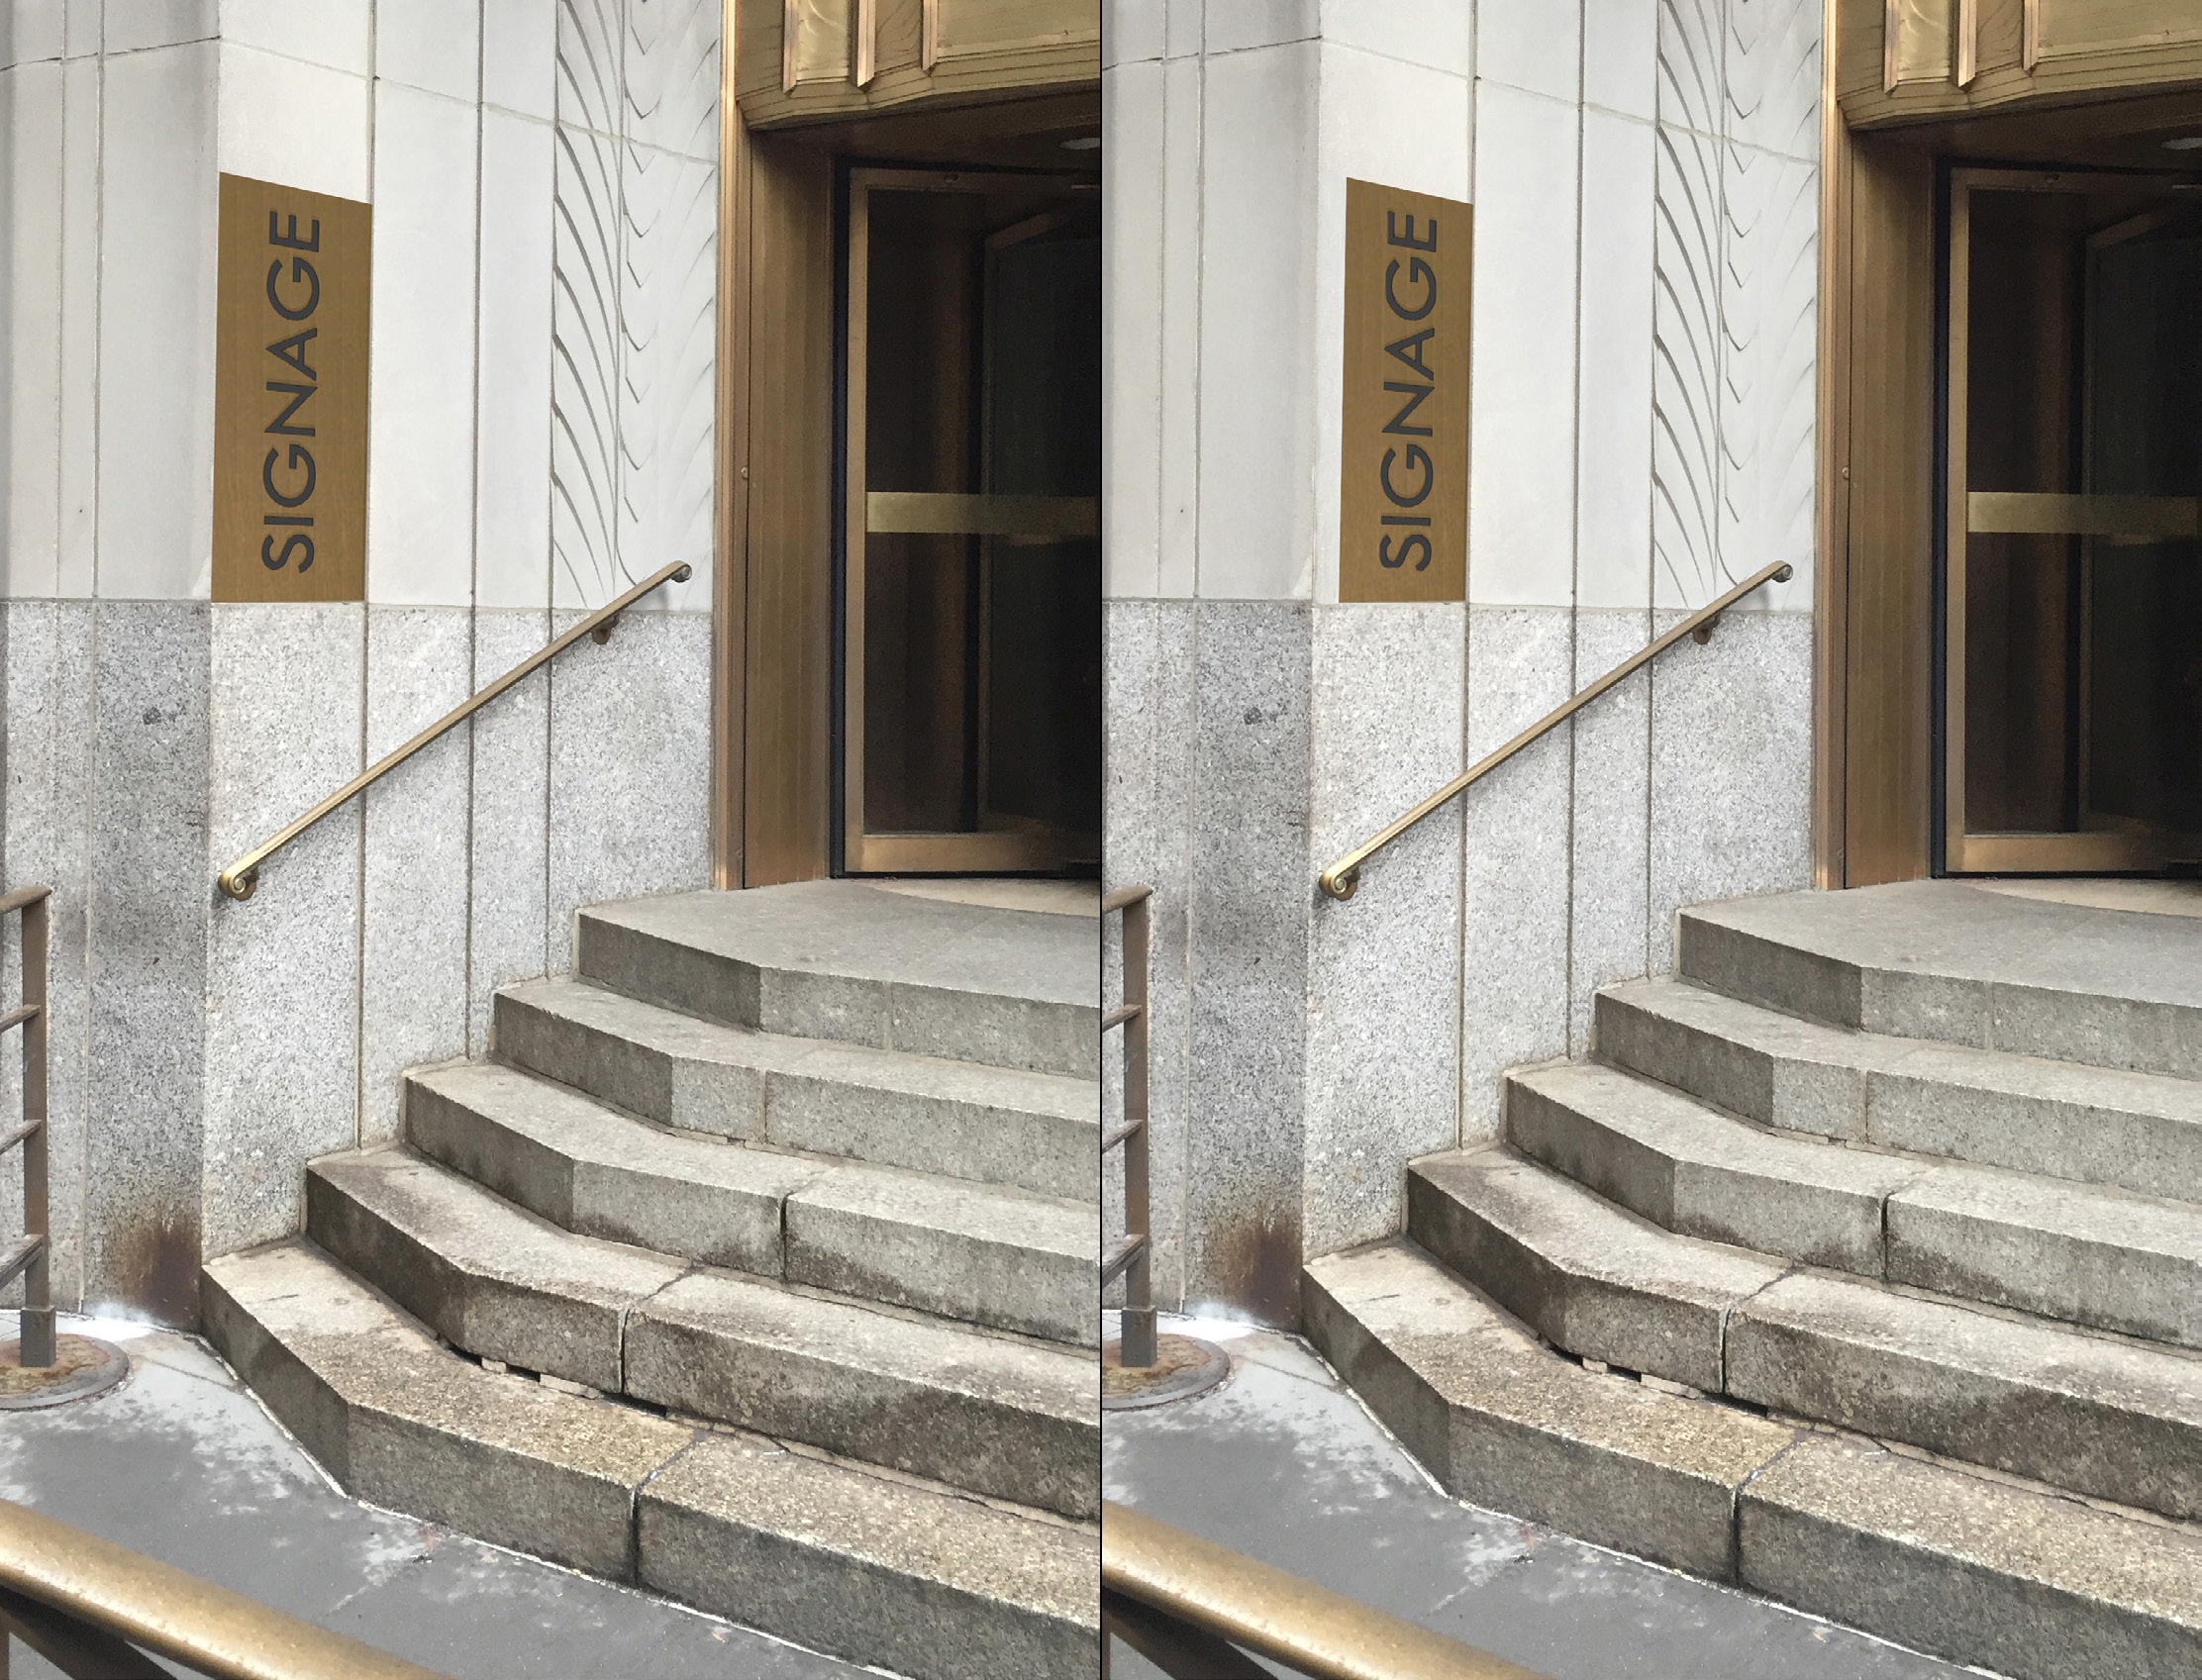 Plaques proposed for Wall Street entrance to 1 Wall Street, January (left) and April (right)